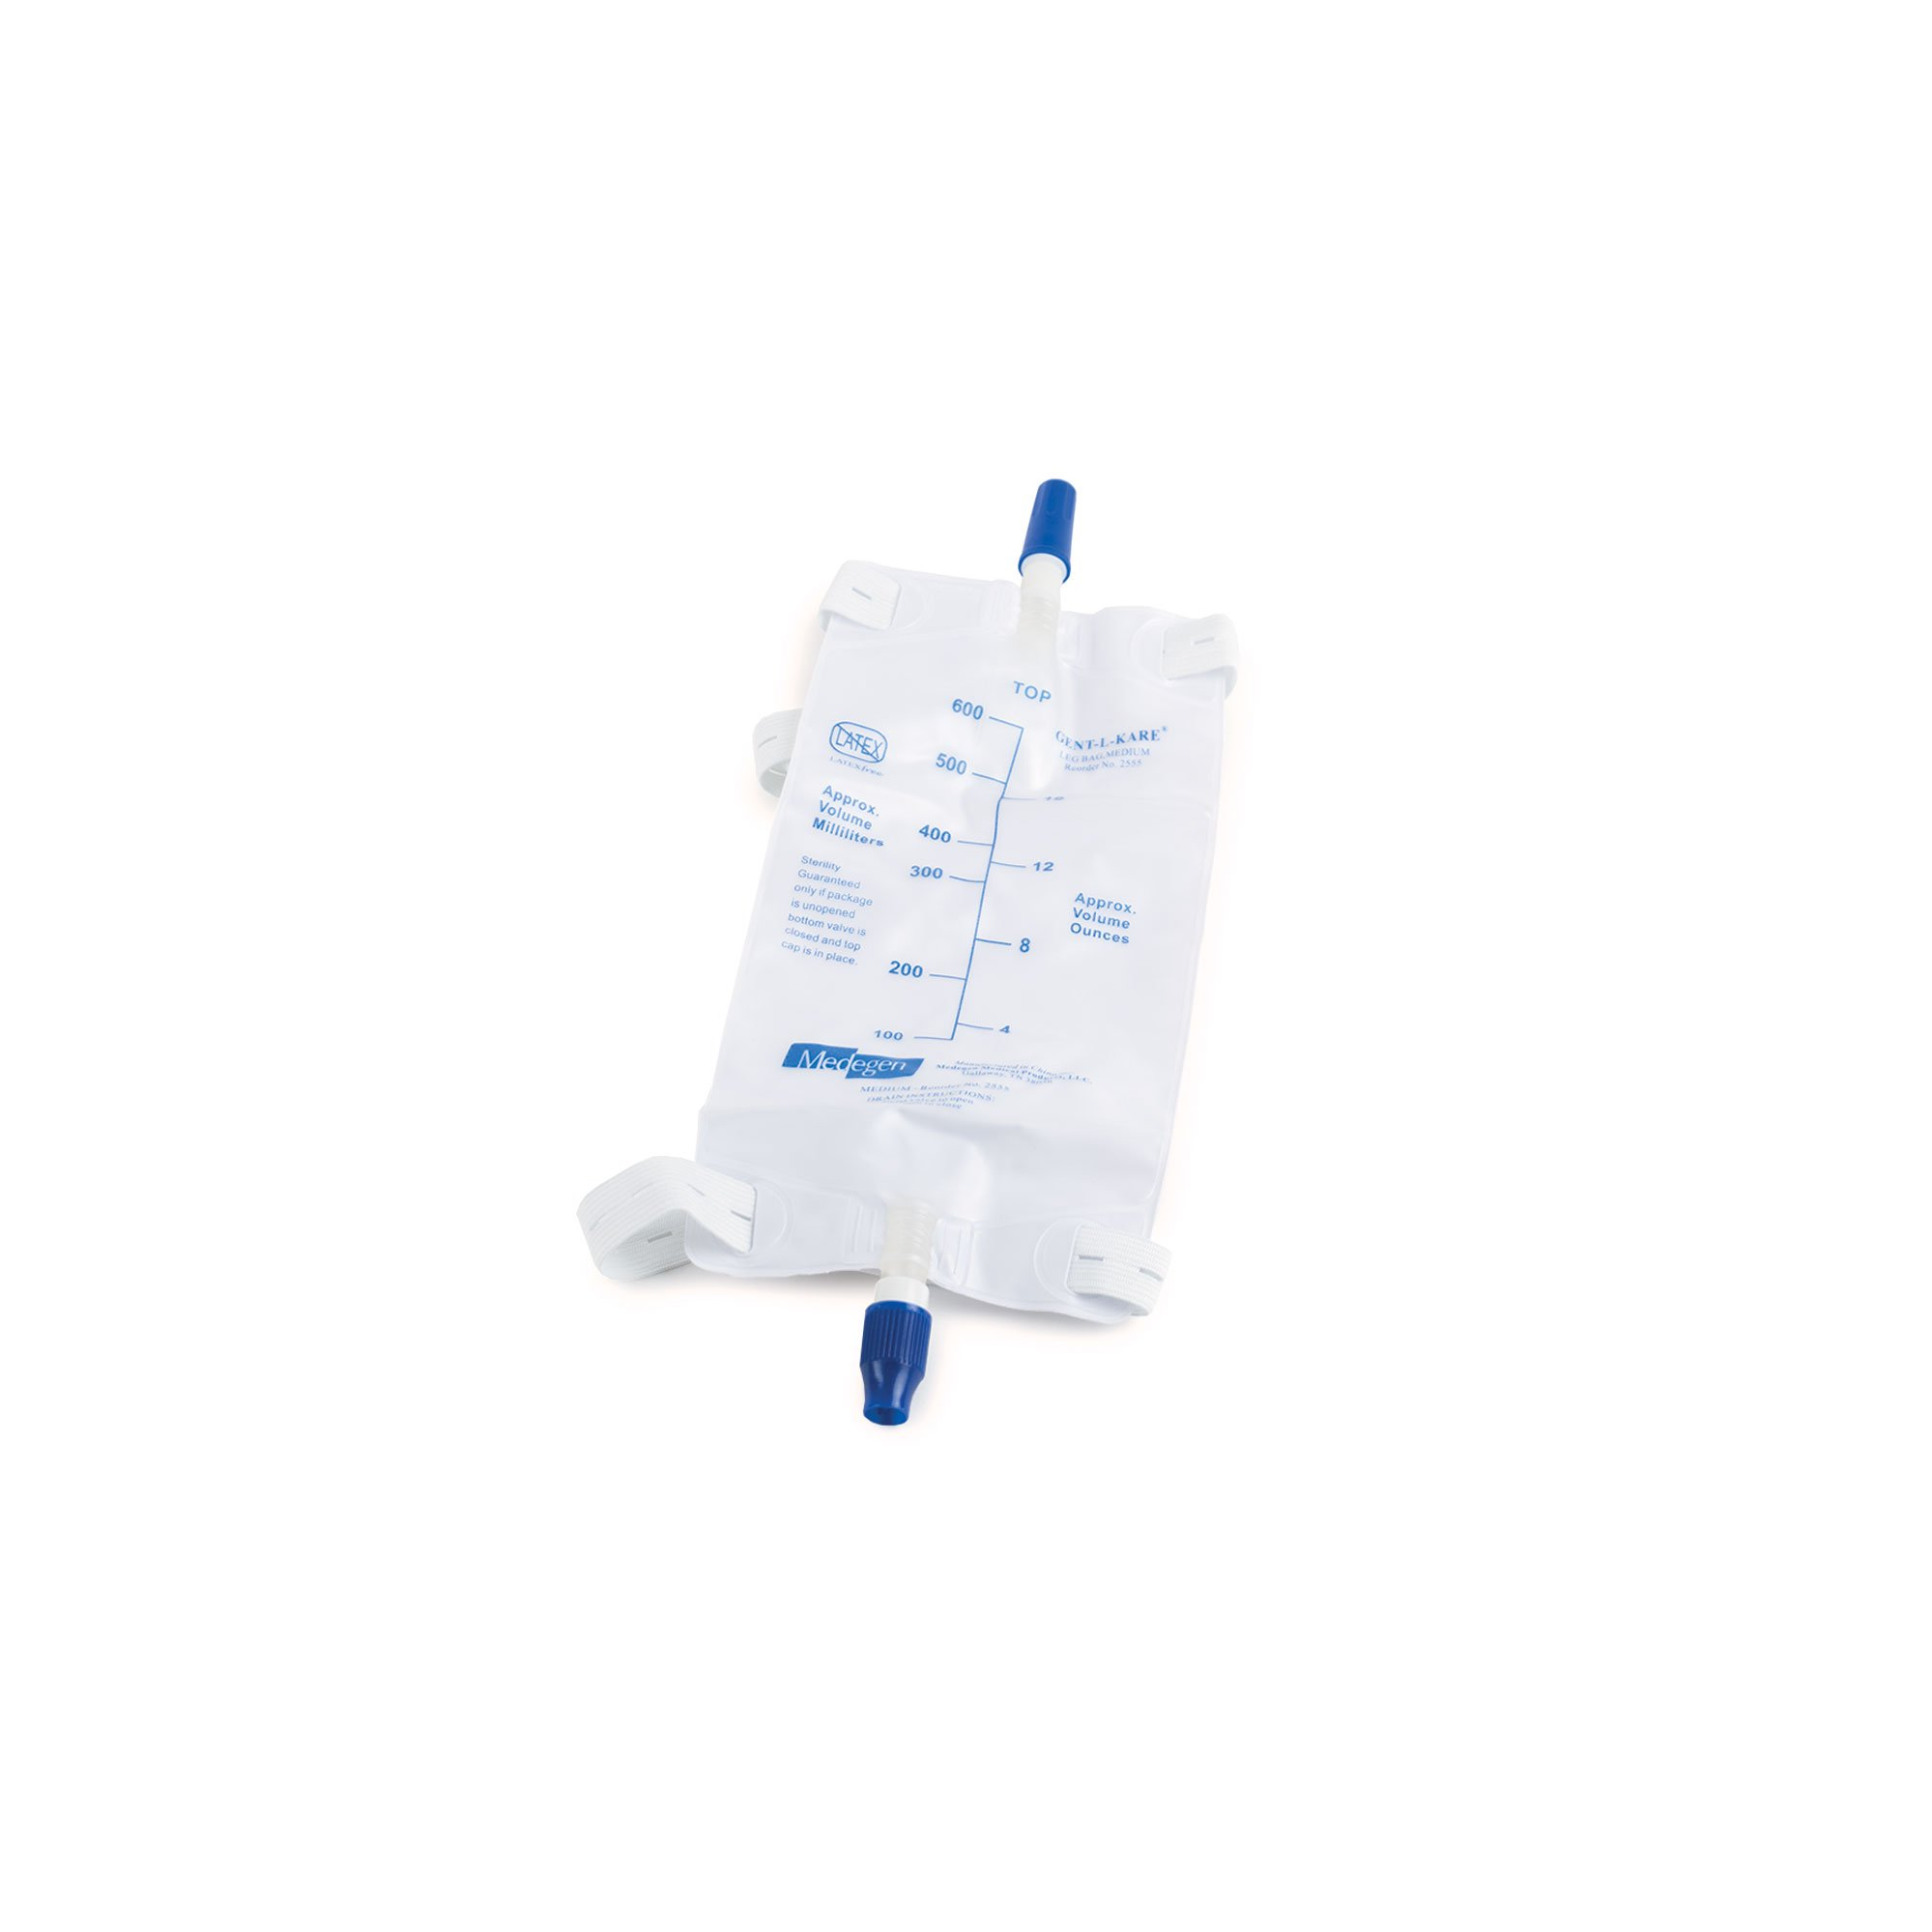 Medegen Medical 02555 Urinary Drainage and Leg Bag, 600 mL, Medium (Pack of 50)